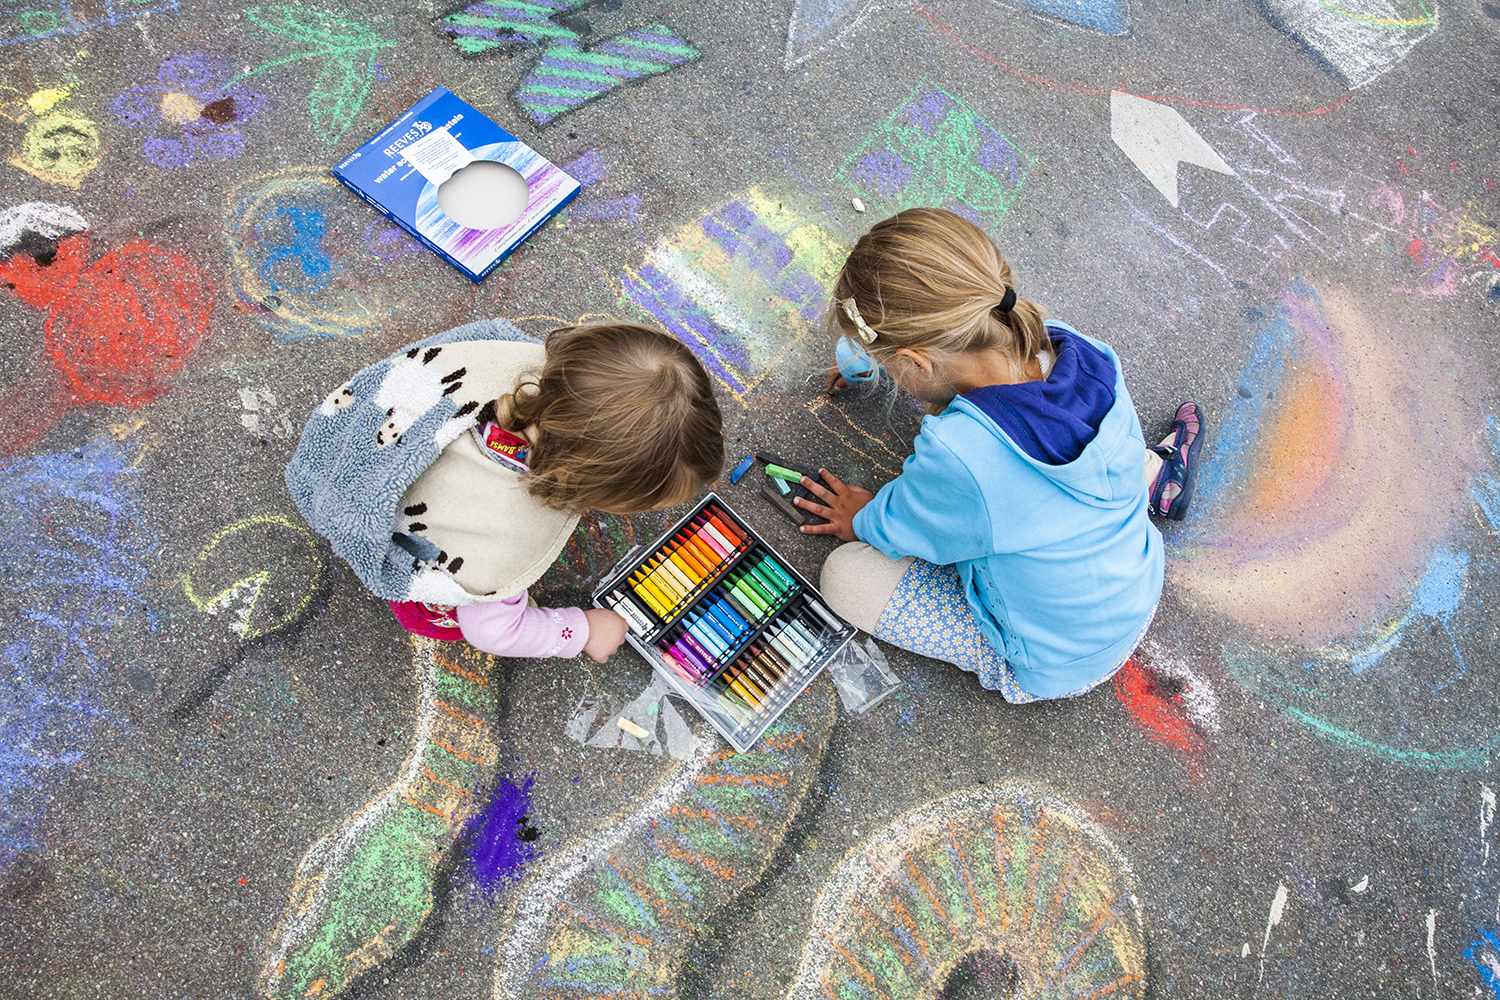 chalk_painting_day_18-09-16_helenalundquist_5